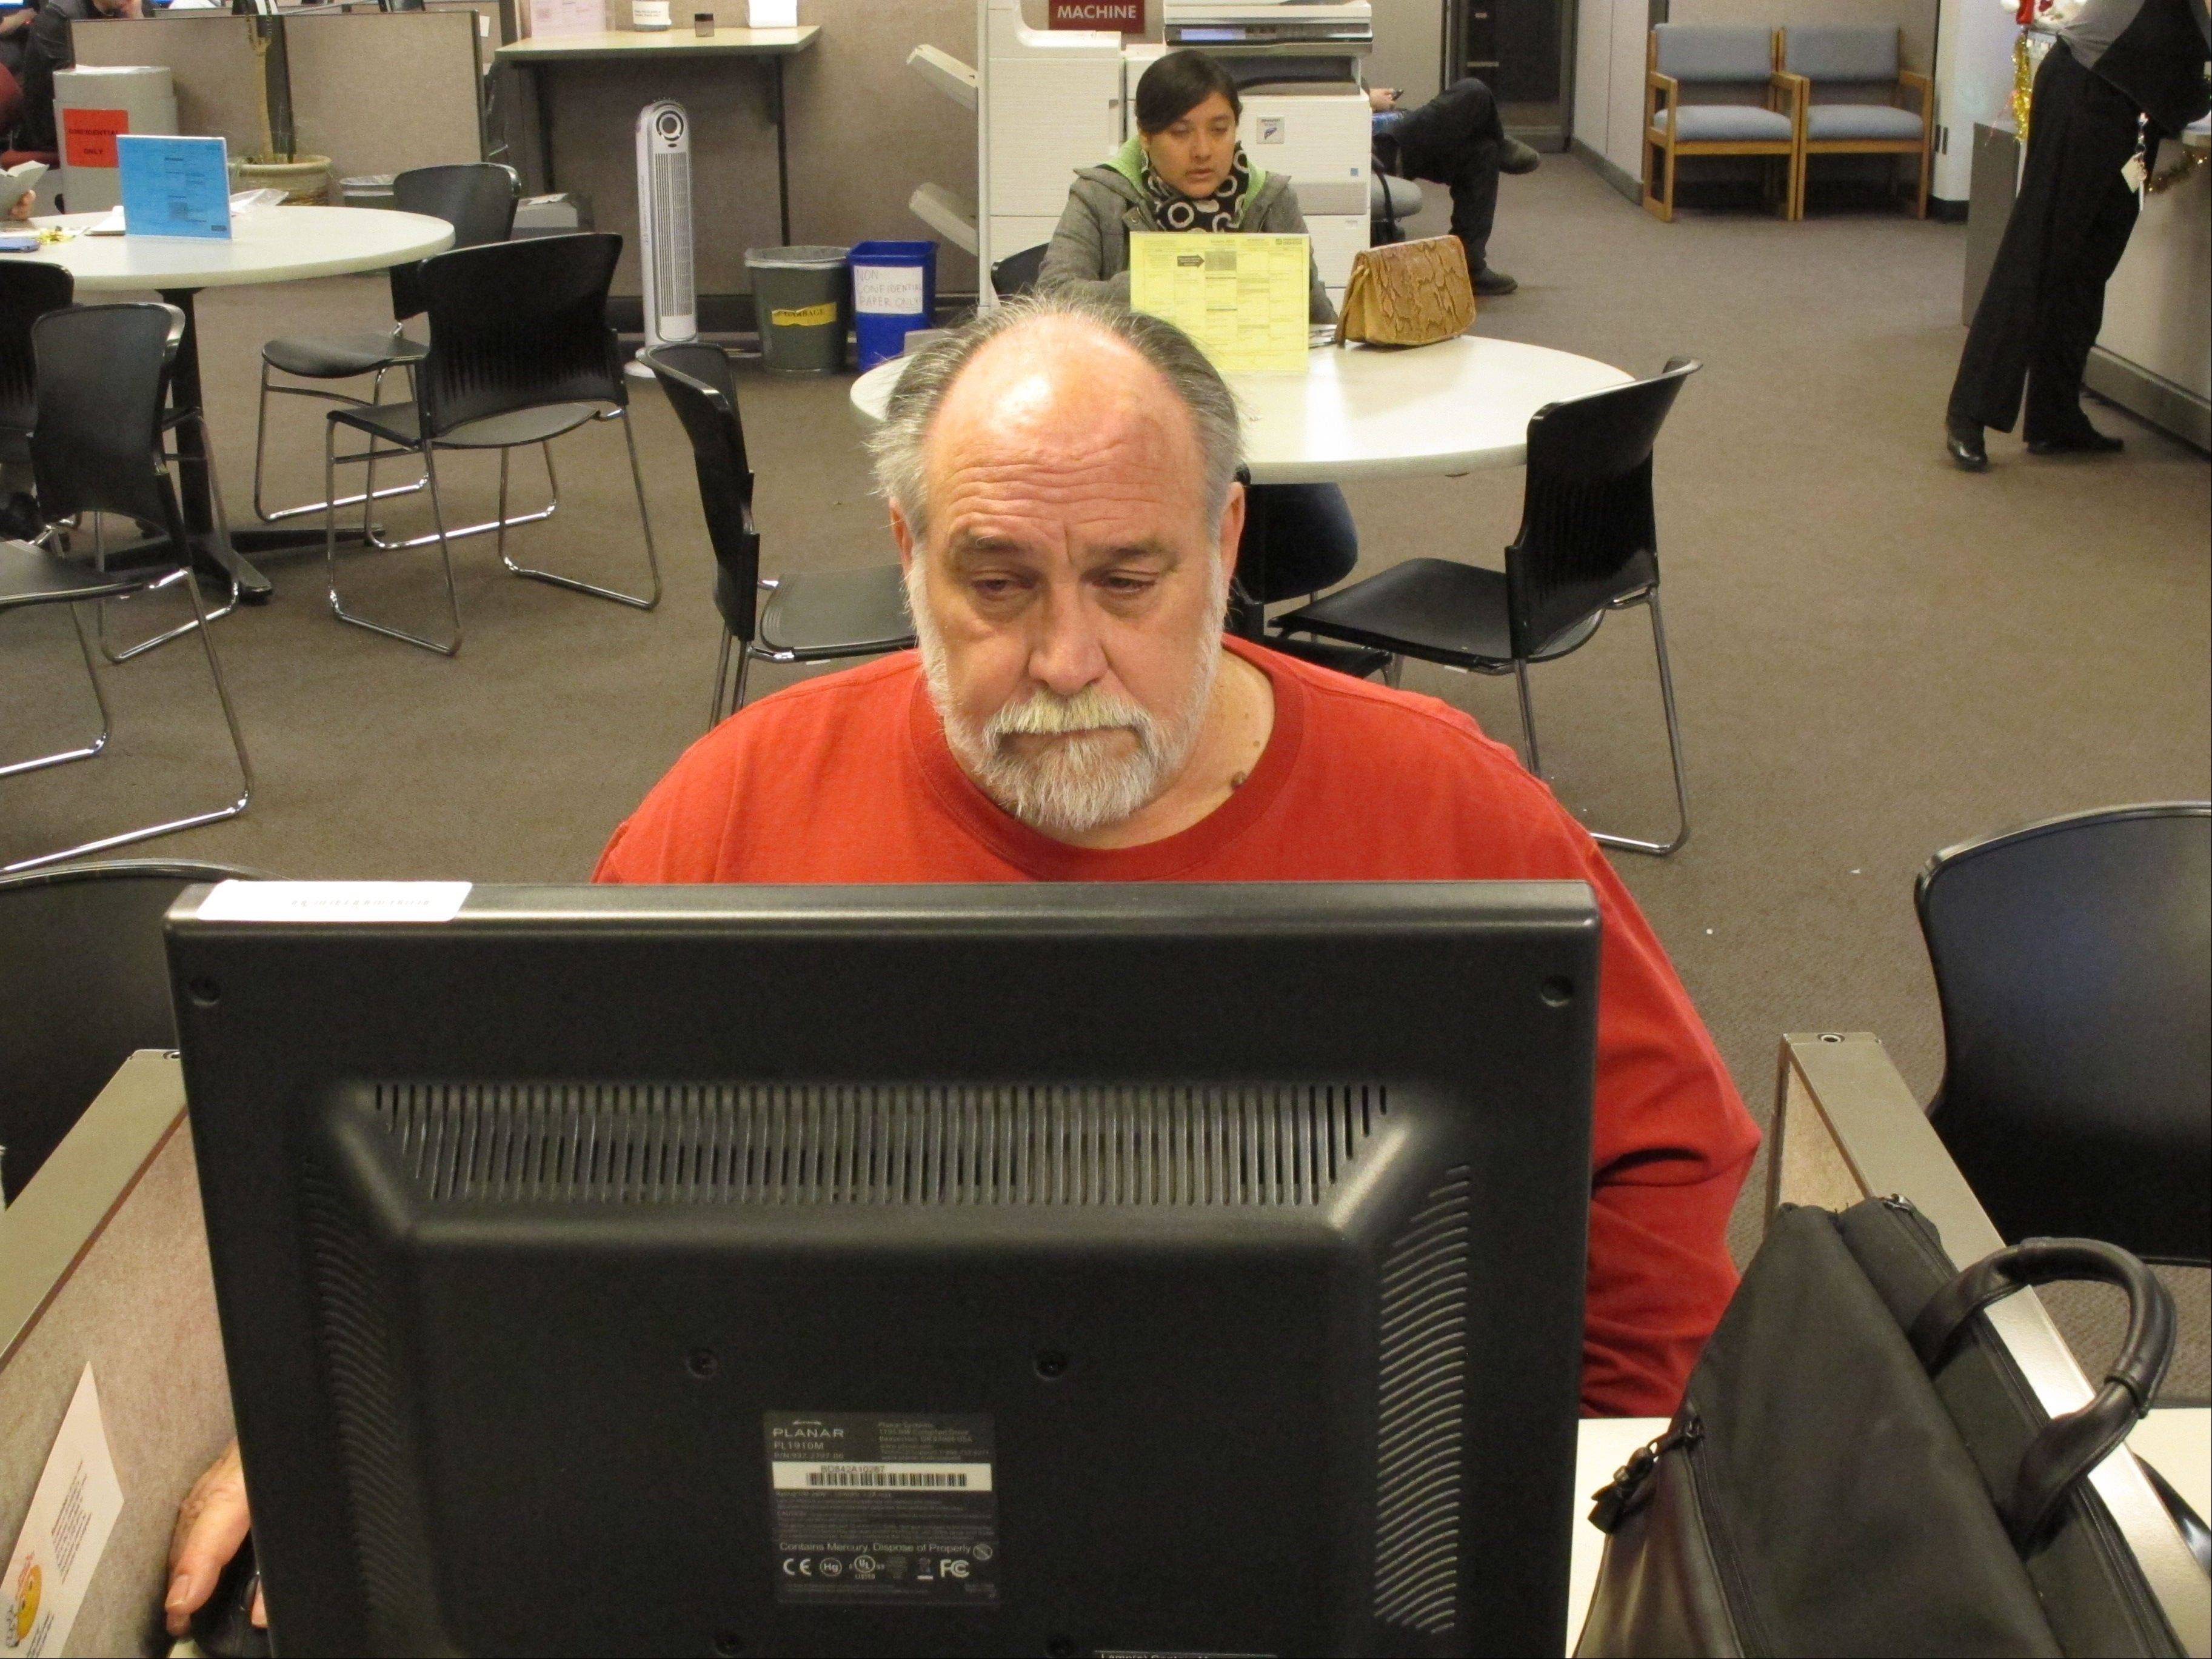 Richard Mattos, 59, looks for jobs at a state-run employment center in Salem, Ore.